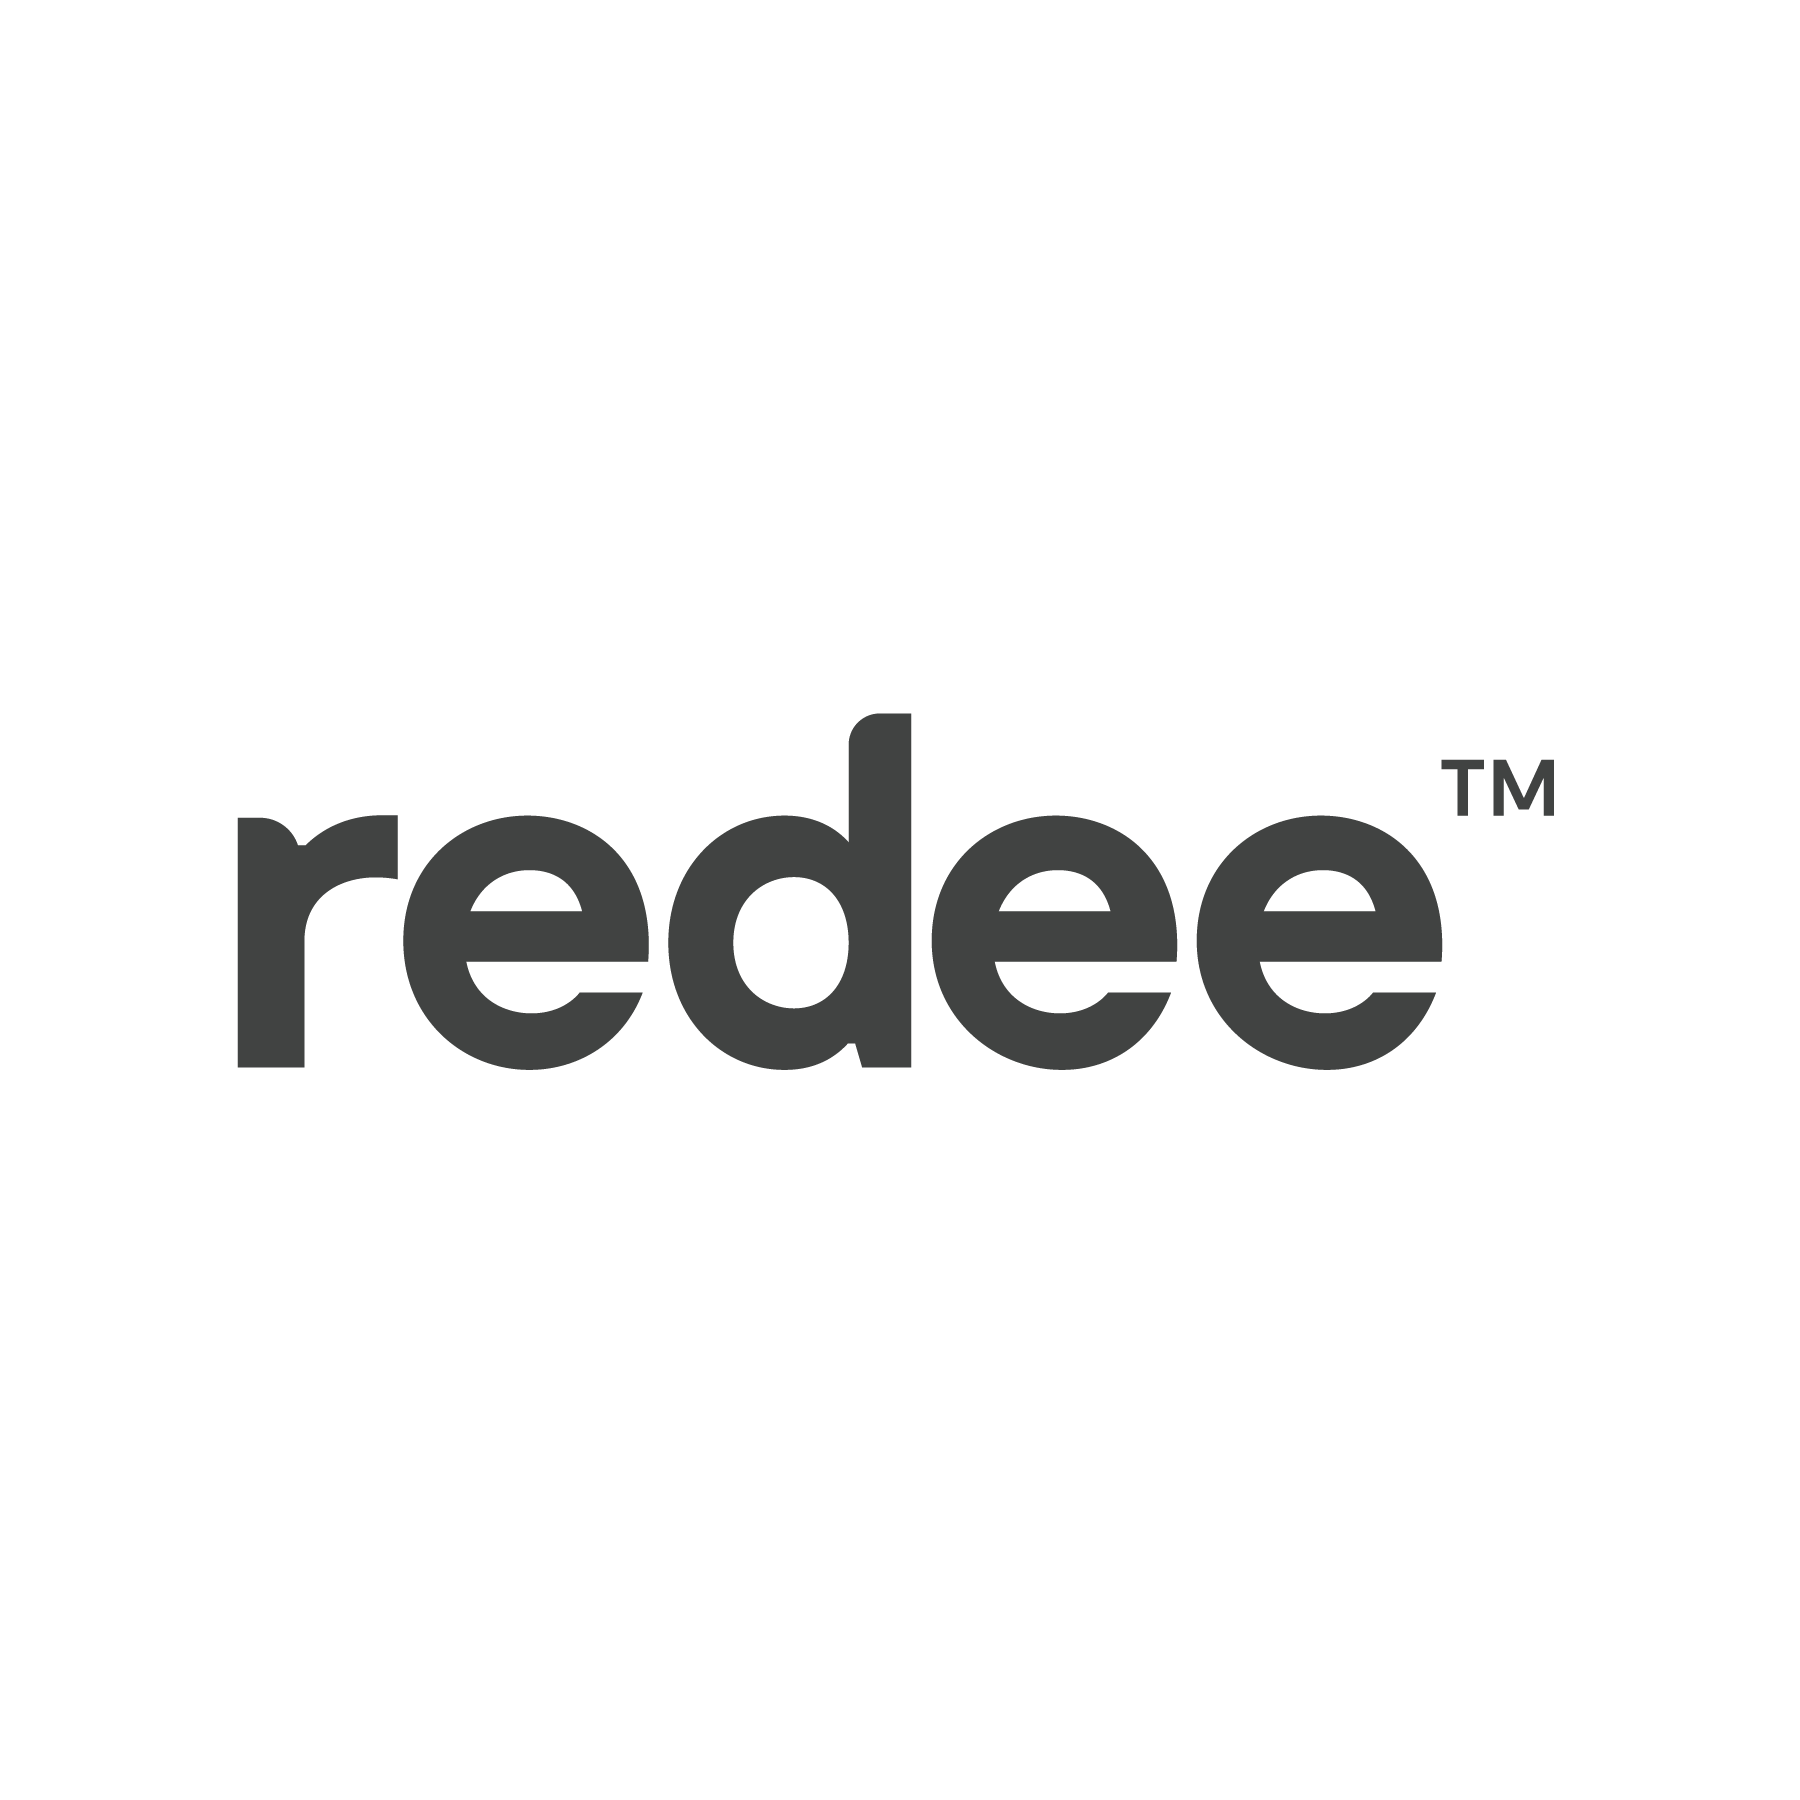 Redee Patch logo